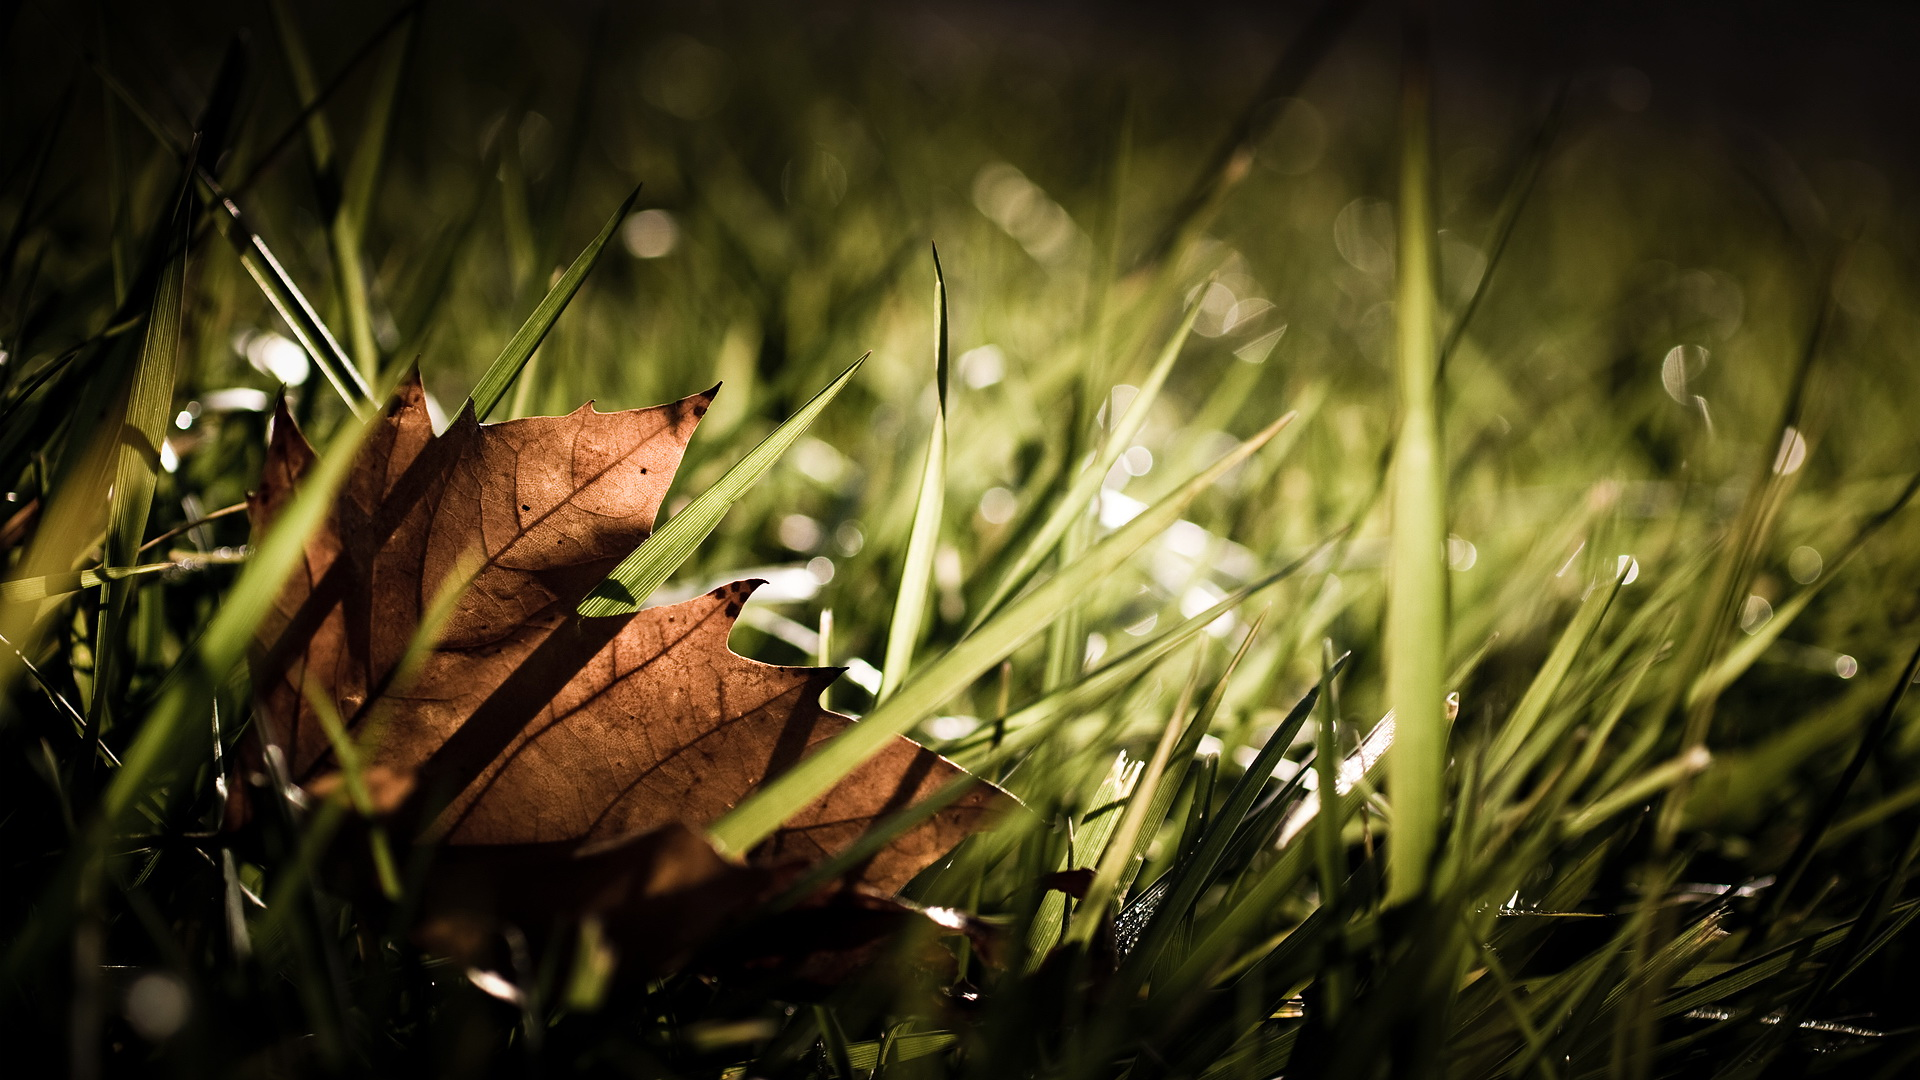 click to free download the wallpaper--Pics of Natural Scene - A Brown Leaf Among the Green Grass, When Will the Latter Turn Yellow? 1920X1080 free wallpaper download